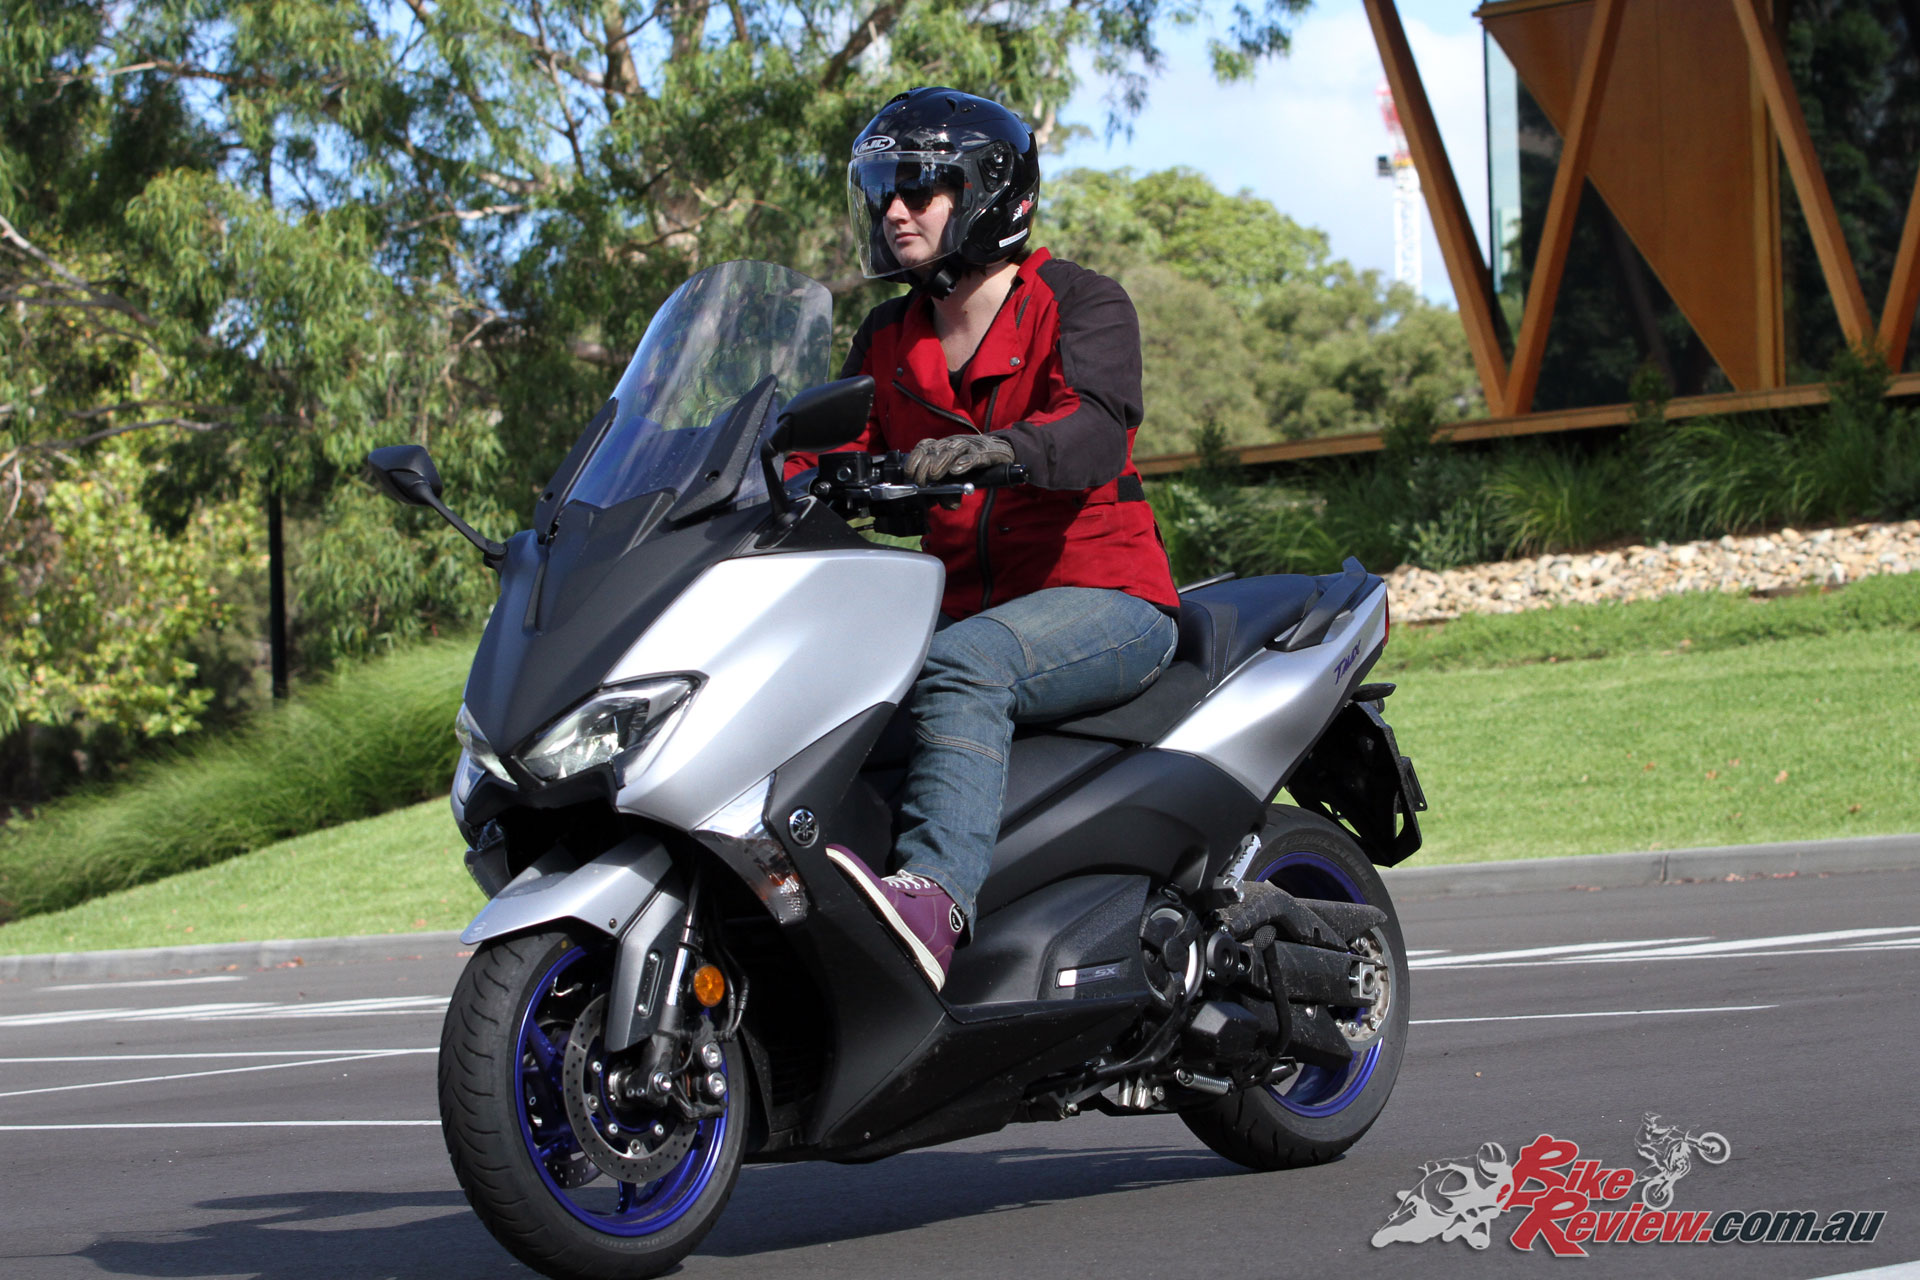 For motorcycle like performance in a scooter package, with some street cred, check out the TMax SX